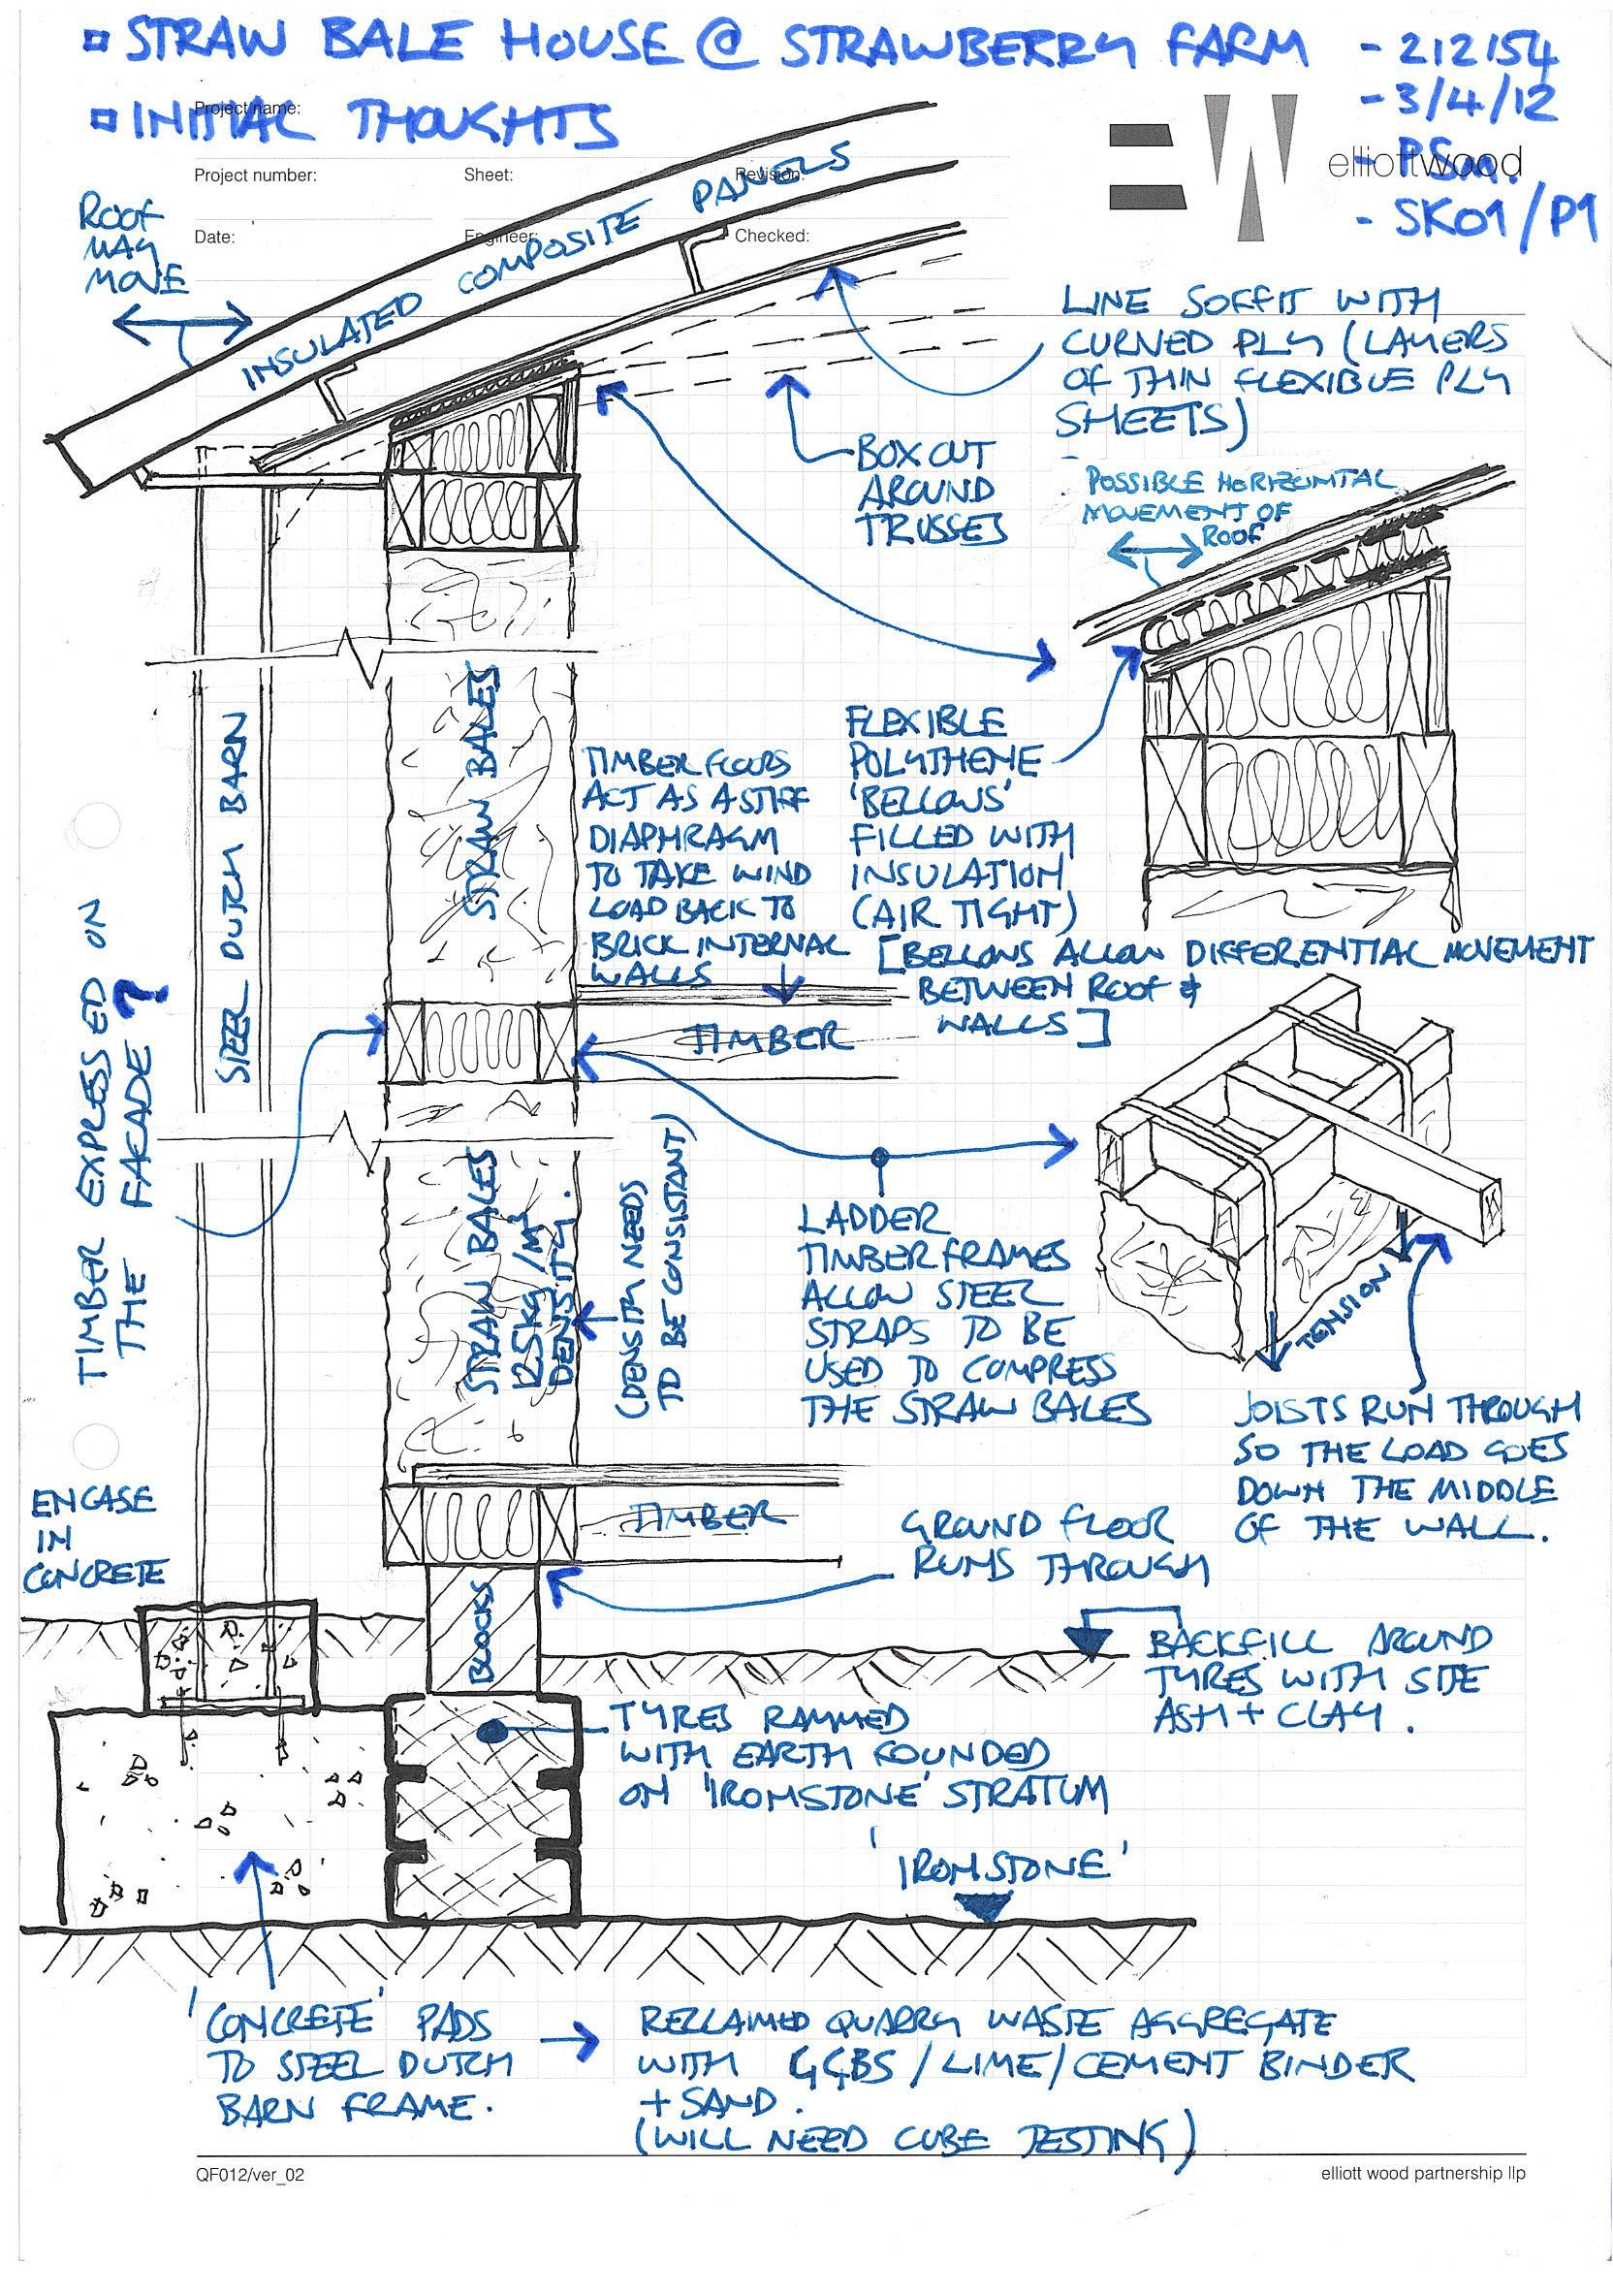 Peter Smith Eliot Wood Straw Bale House Big Jpg 1664 2368 Architectural Engineering Civil Engineering Design Architecture Design Concept